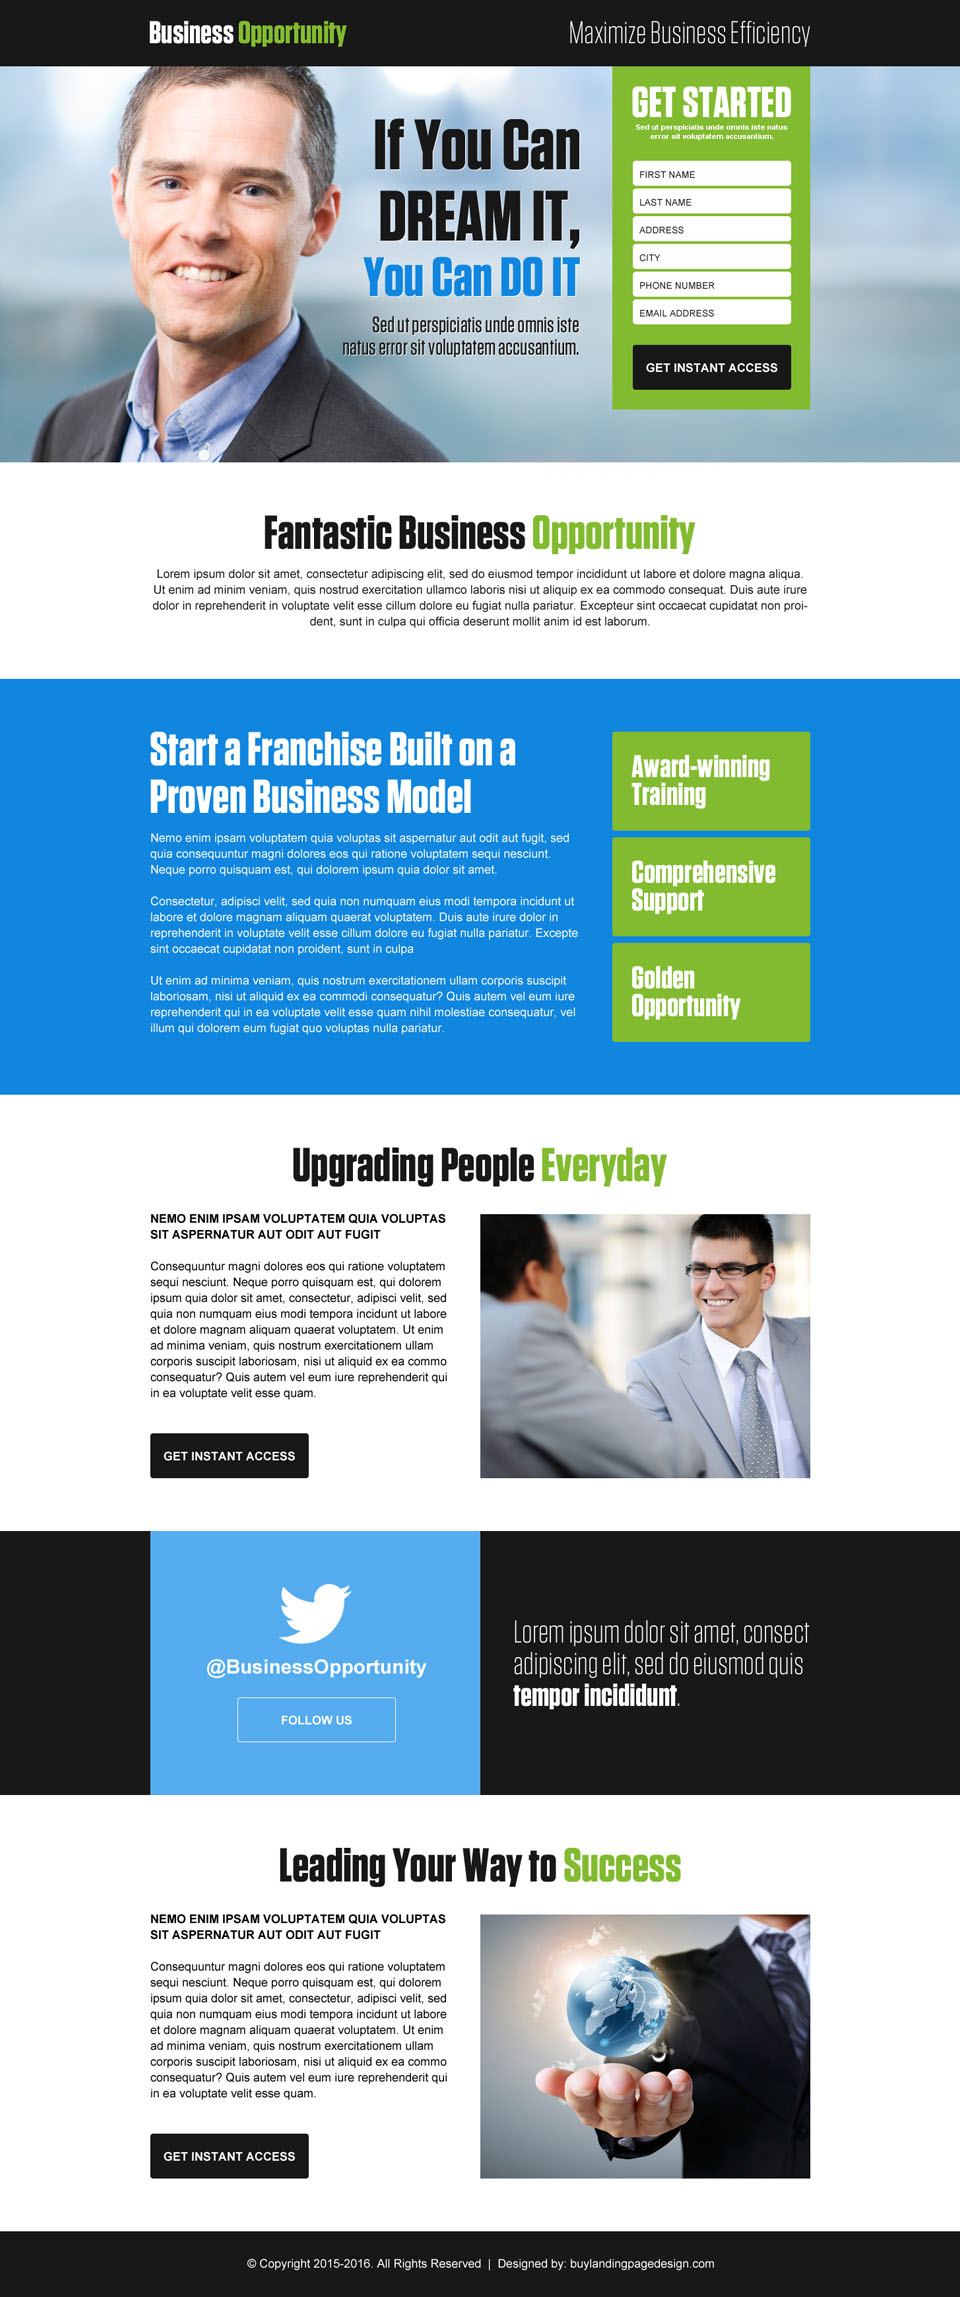 fantastic-business-opportunity-lead-generation-converting-landing-page-design-031